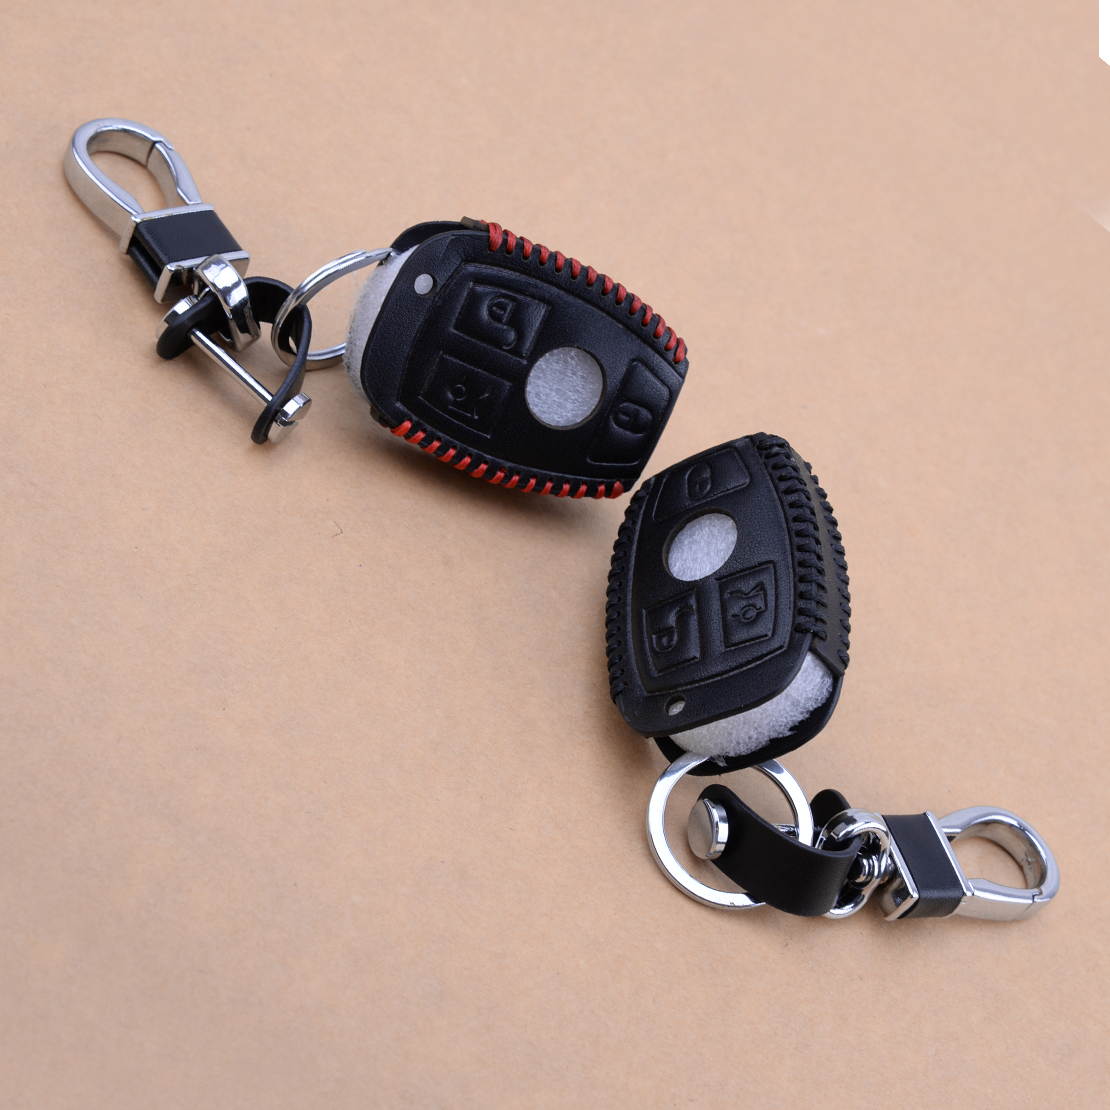 CITALL 3 Button PU Leather Car Remote Smart Key Cover Case Holder Fit For Mercedes Benz 3 4 Buttons C E S G Class